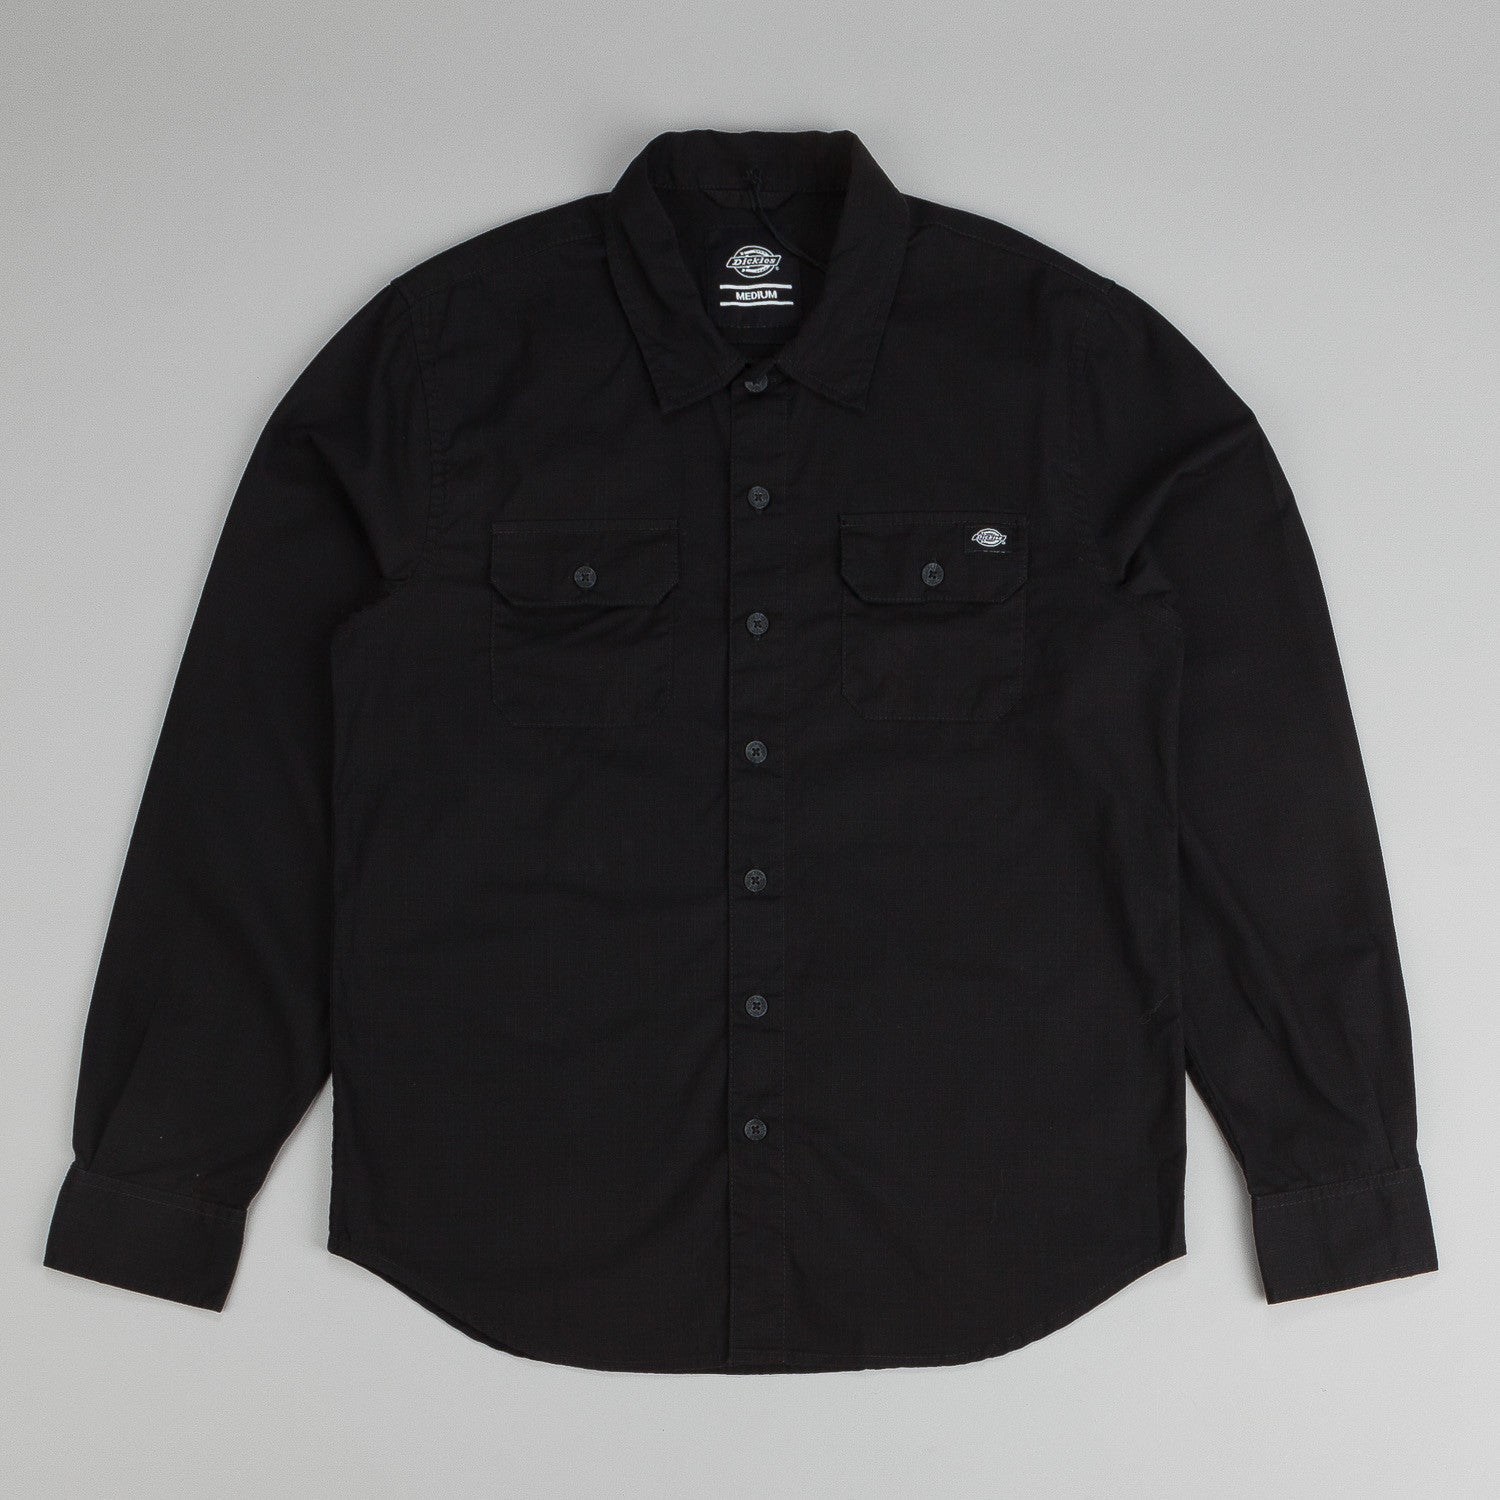 Dickies Tallahassee L/S Shirt - Black